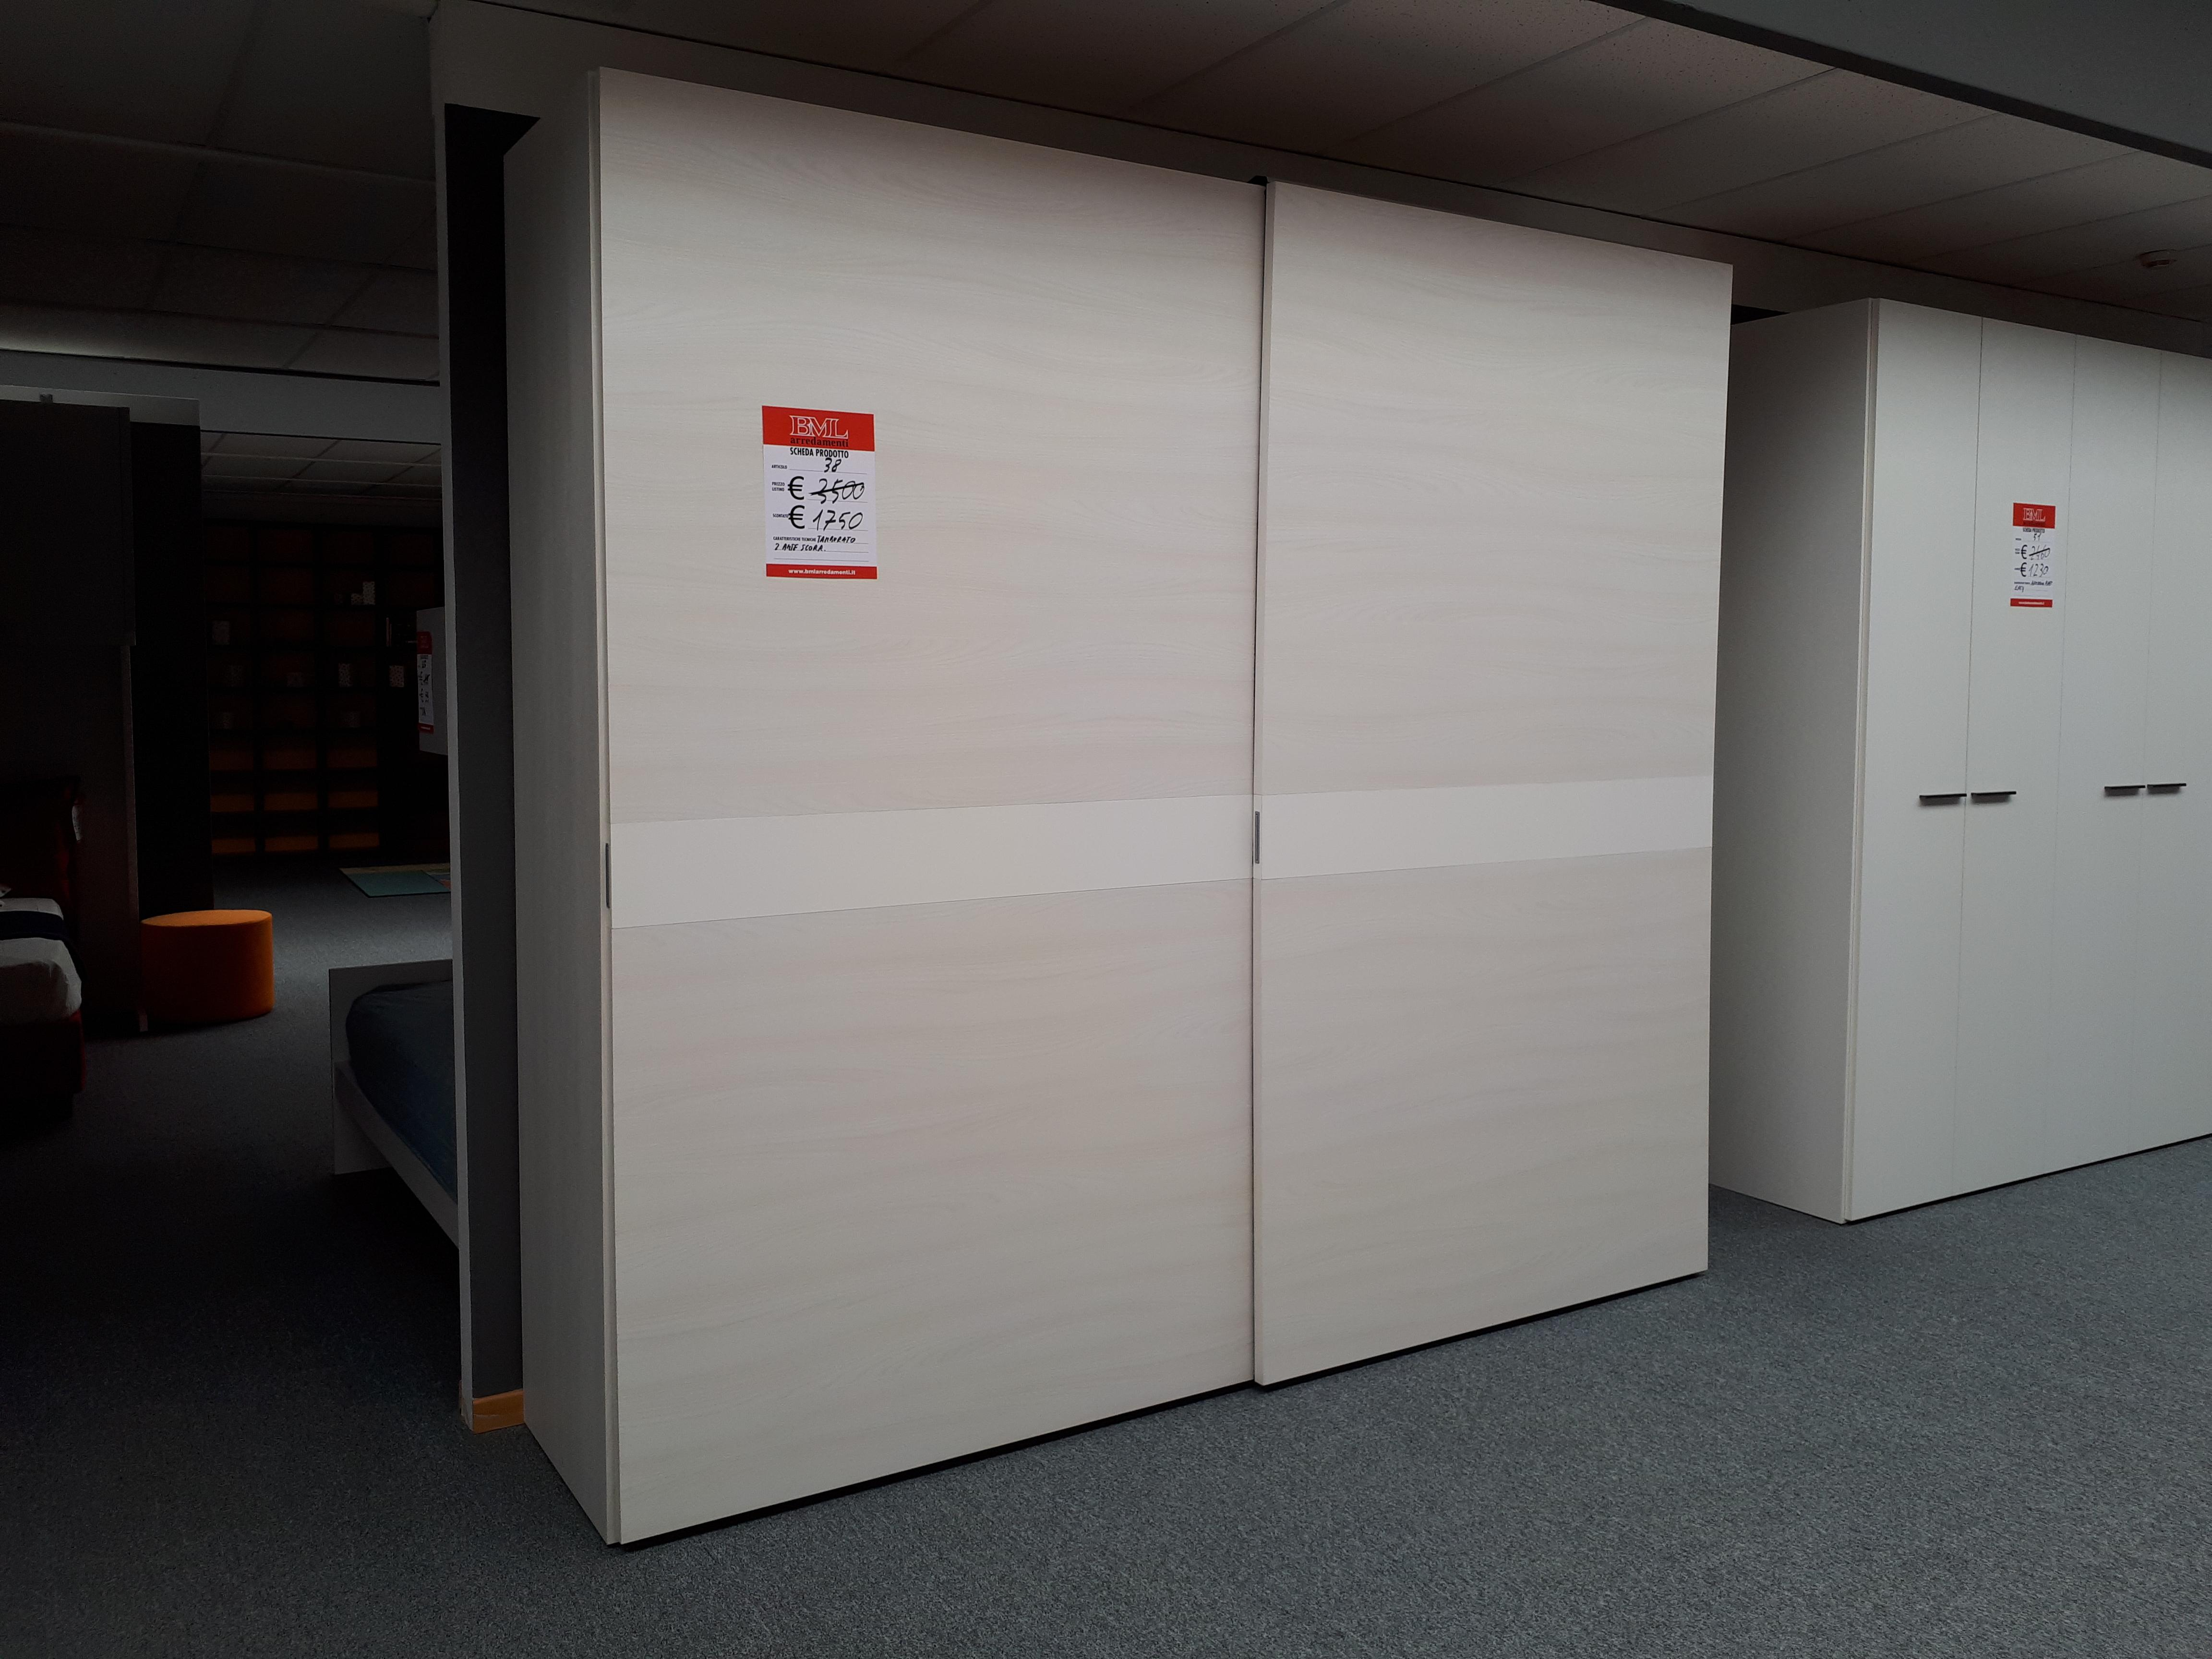 Armadio frassinato bianco art 38 outlet mobili e for Outlet mobili vicenza